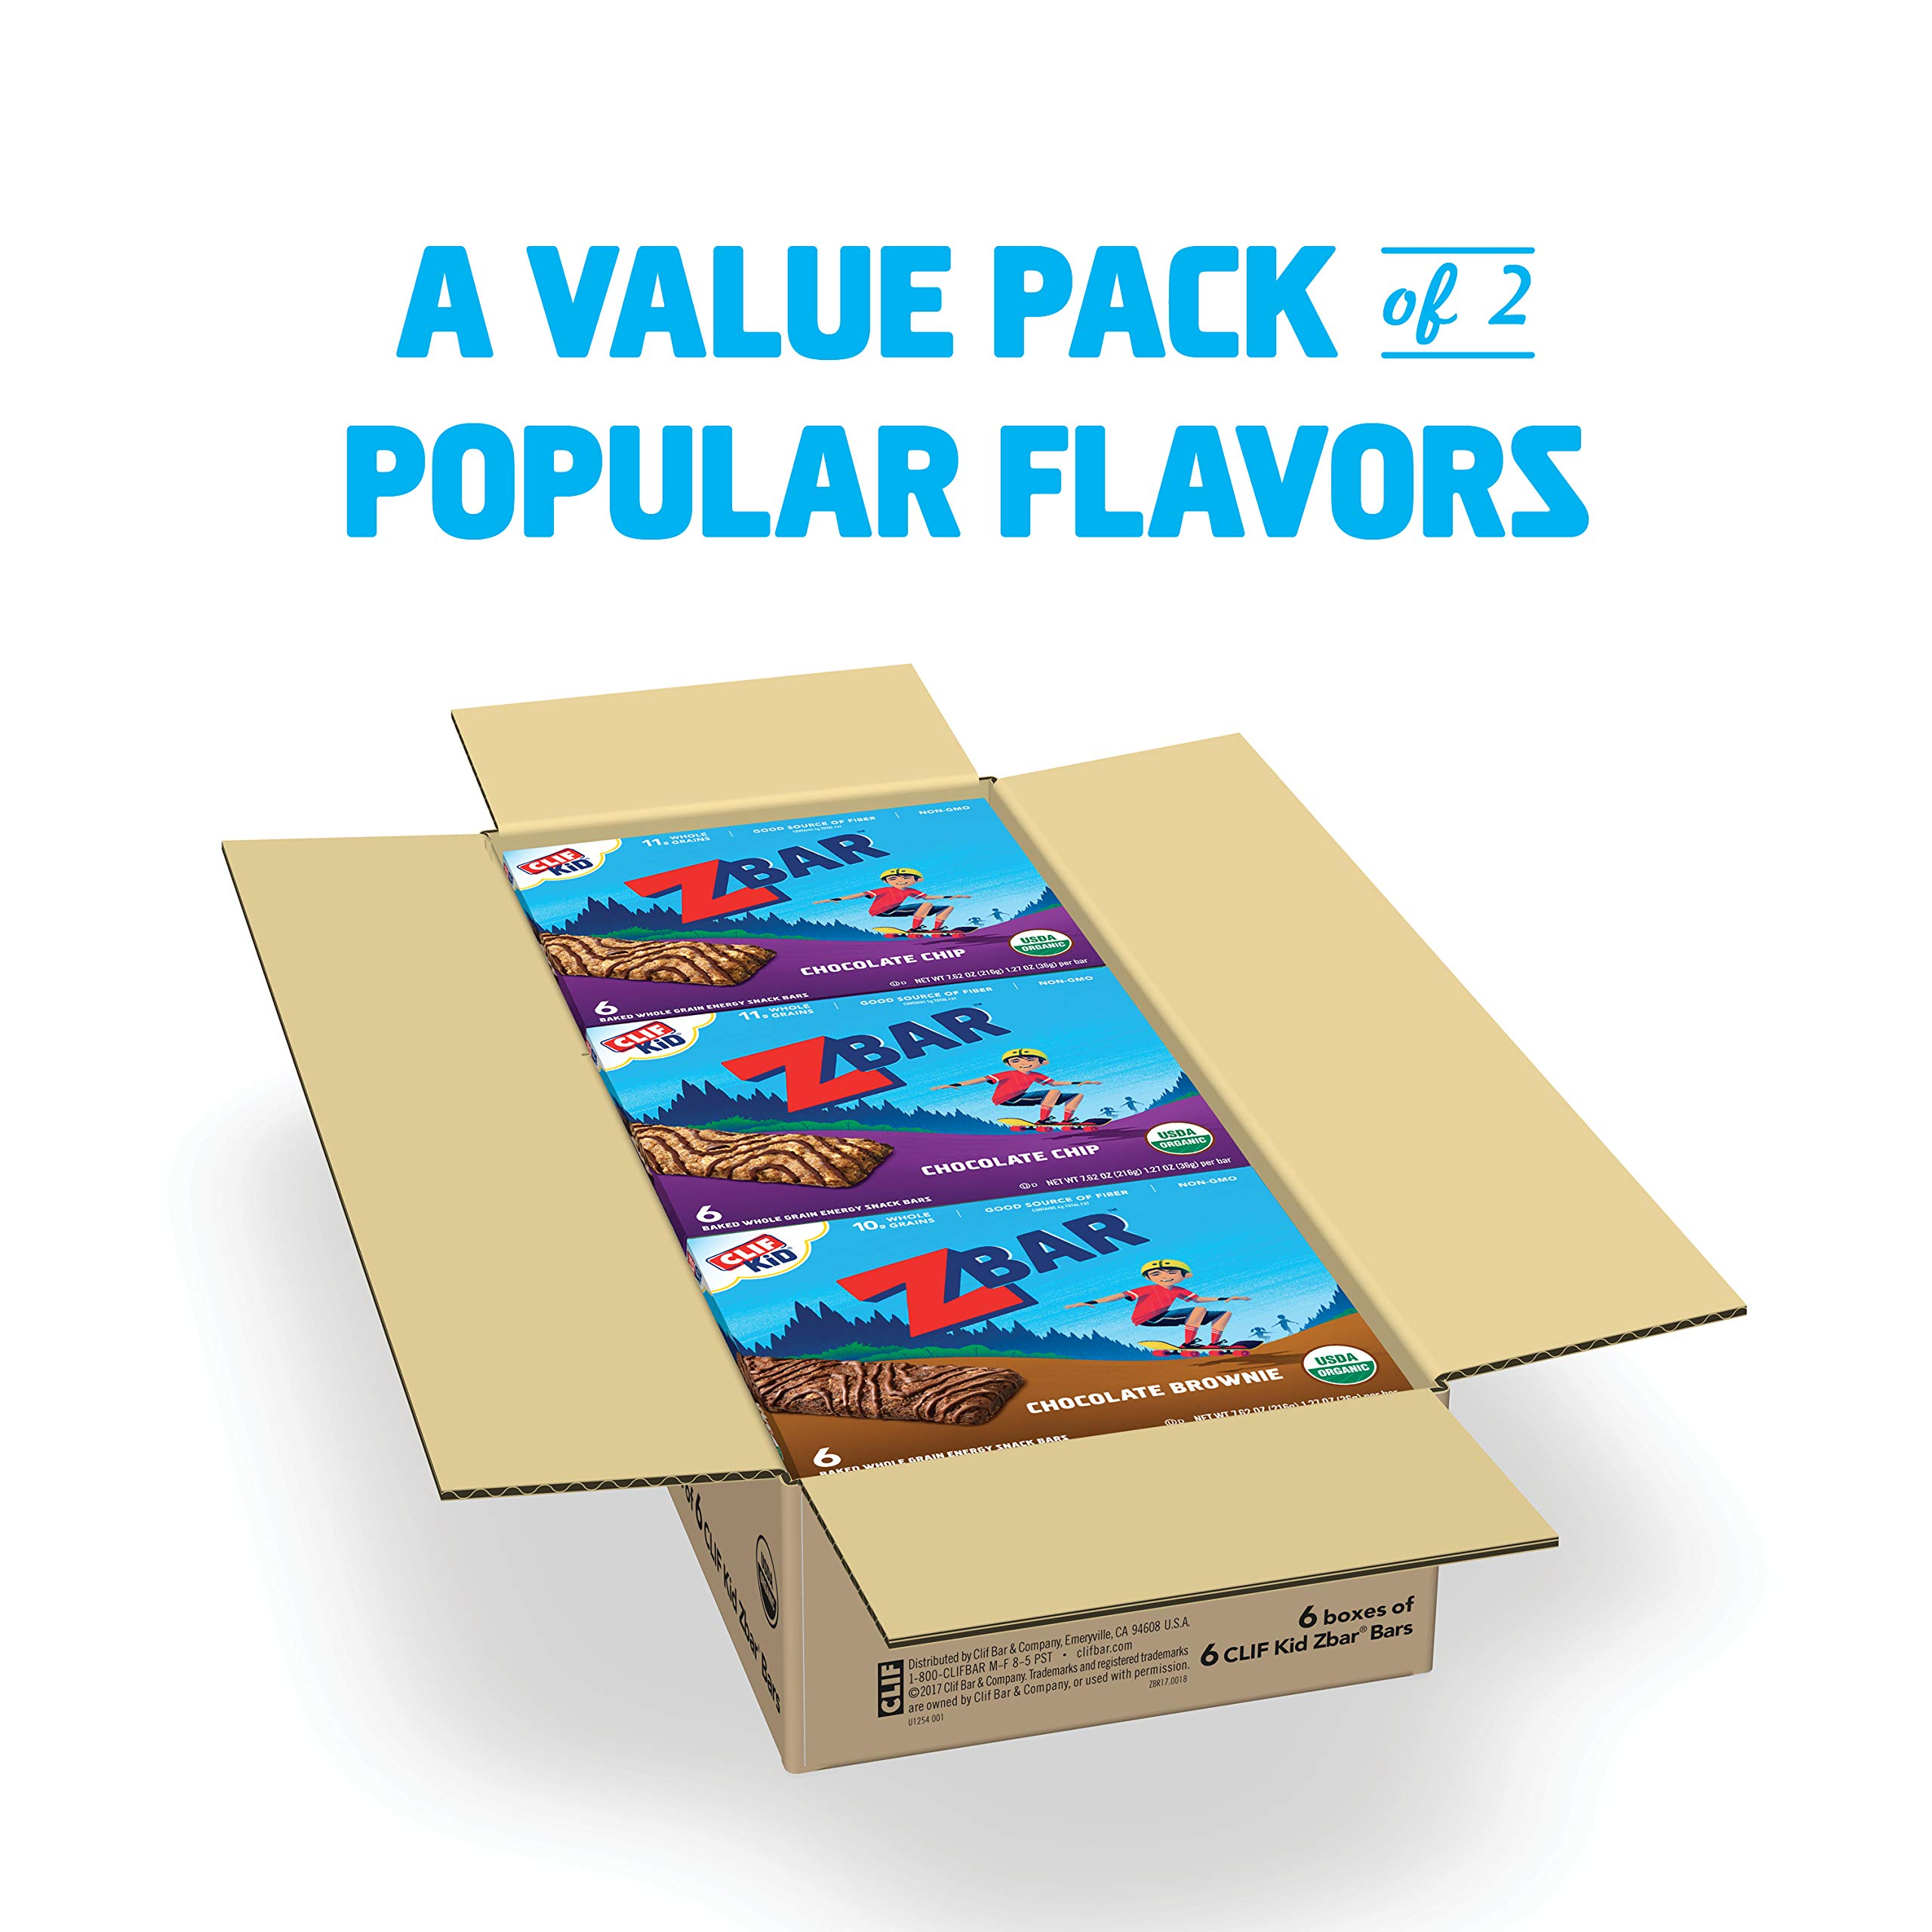 Clif Kid ZBAR - Organic Energy Bars - Value Pack - (1.27 Ounce Snack Bars, 36 Count) by Clif Bar (Image #2)